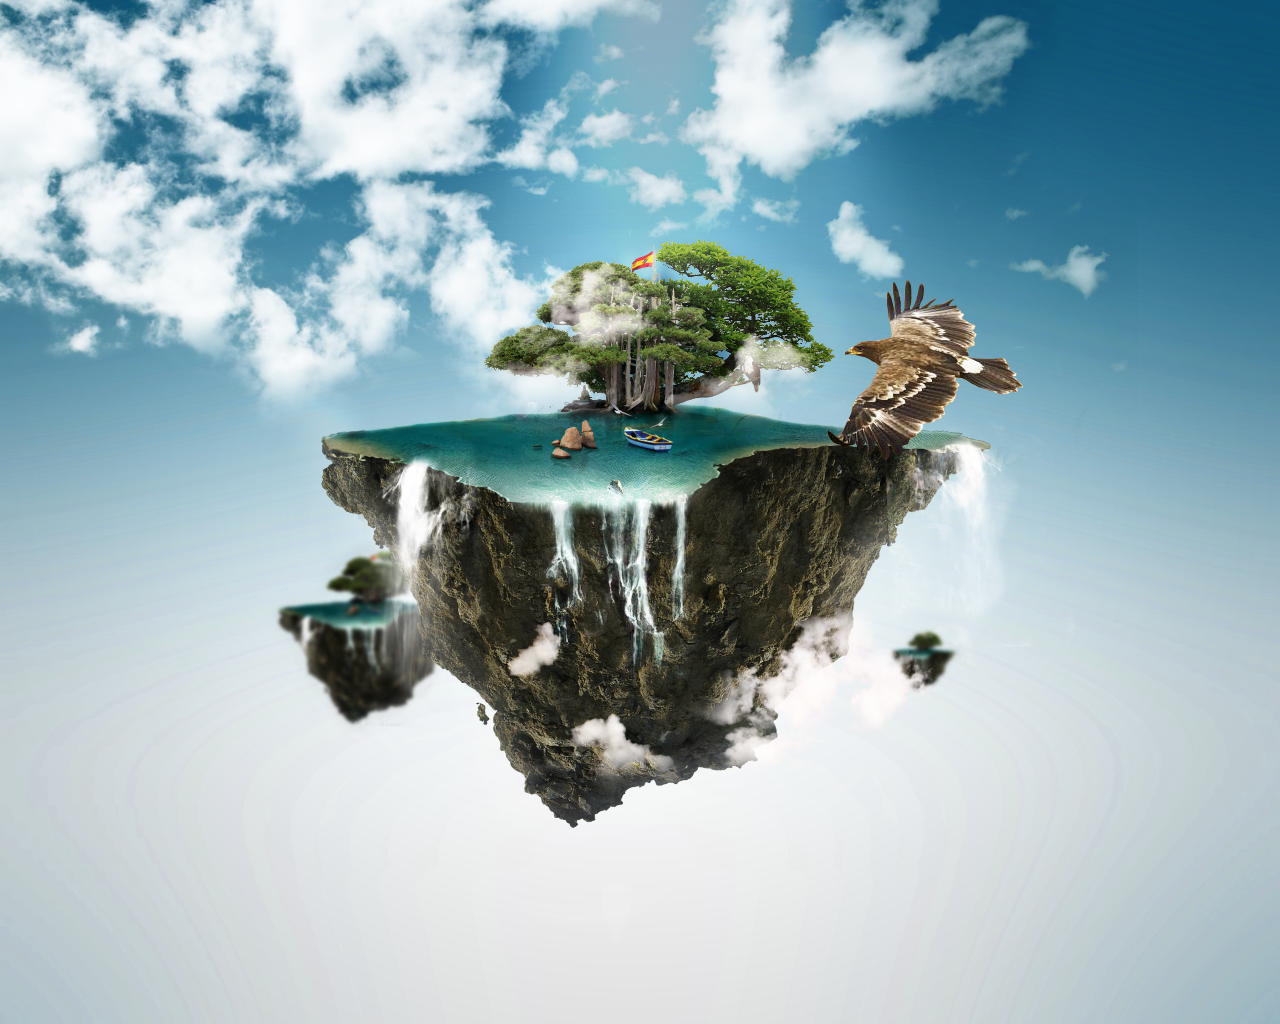 clouds hook floating islands - photo #14